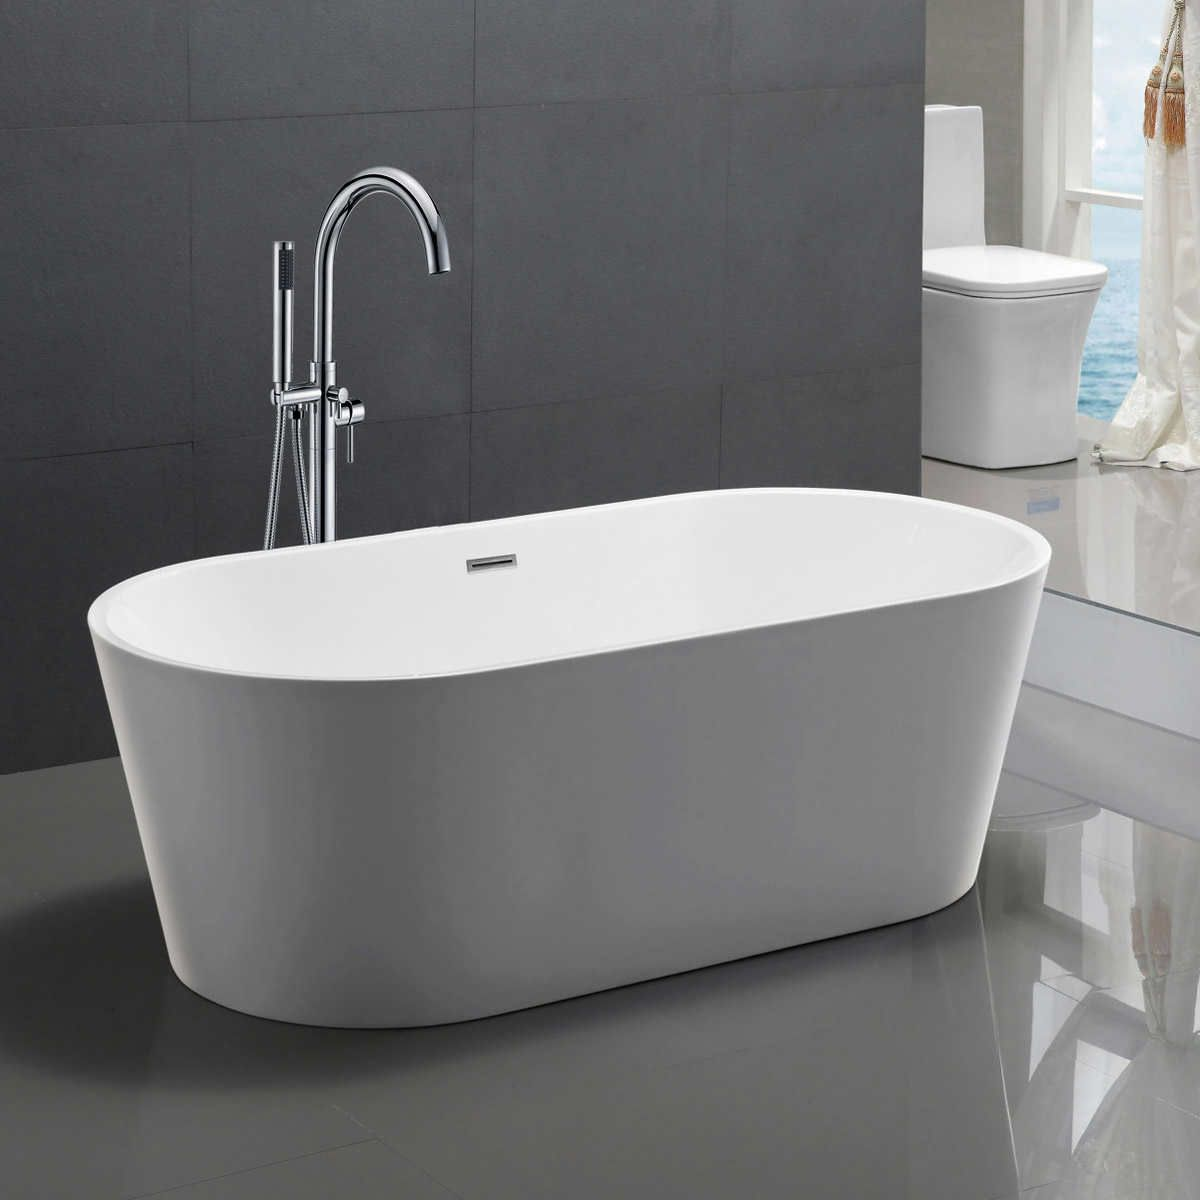 chand freestanding soaker tub with